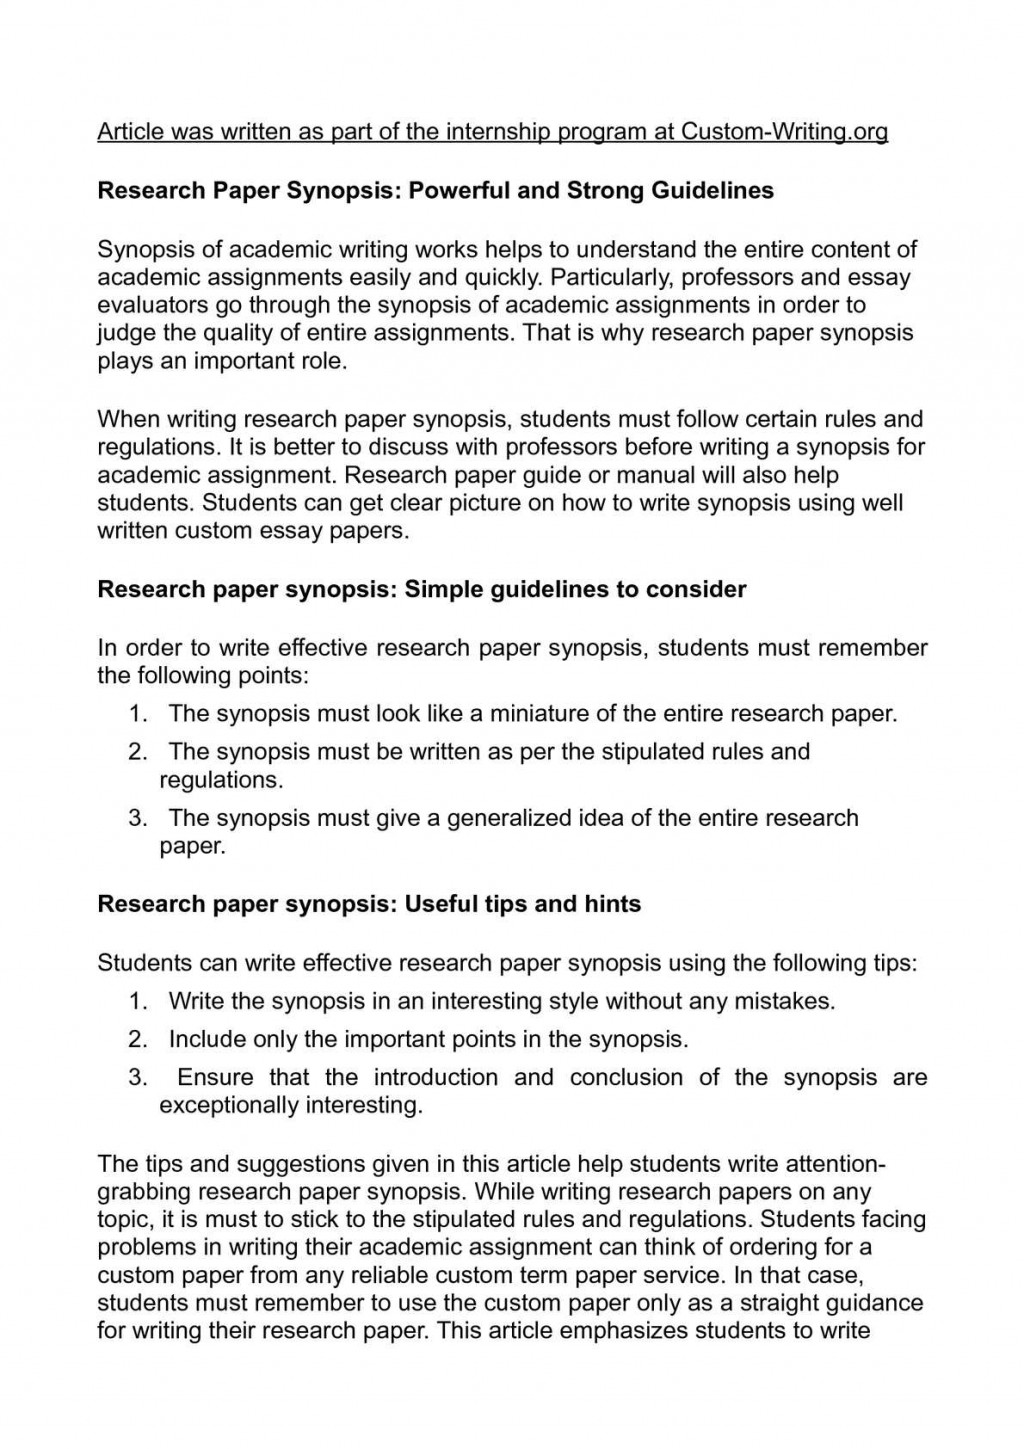 011 P1 Research Paper Order Of Wonderful A Making Mla Reviews Large